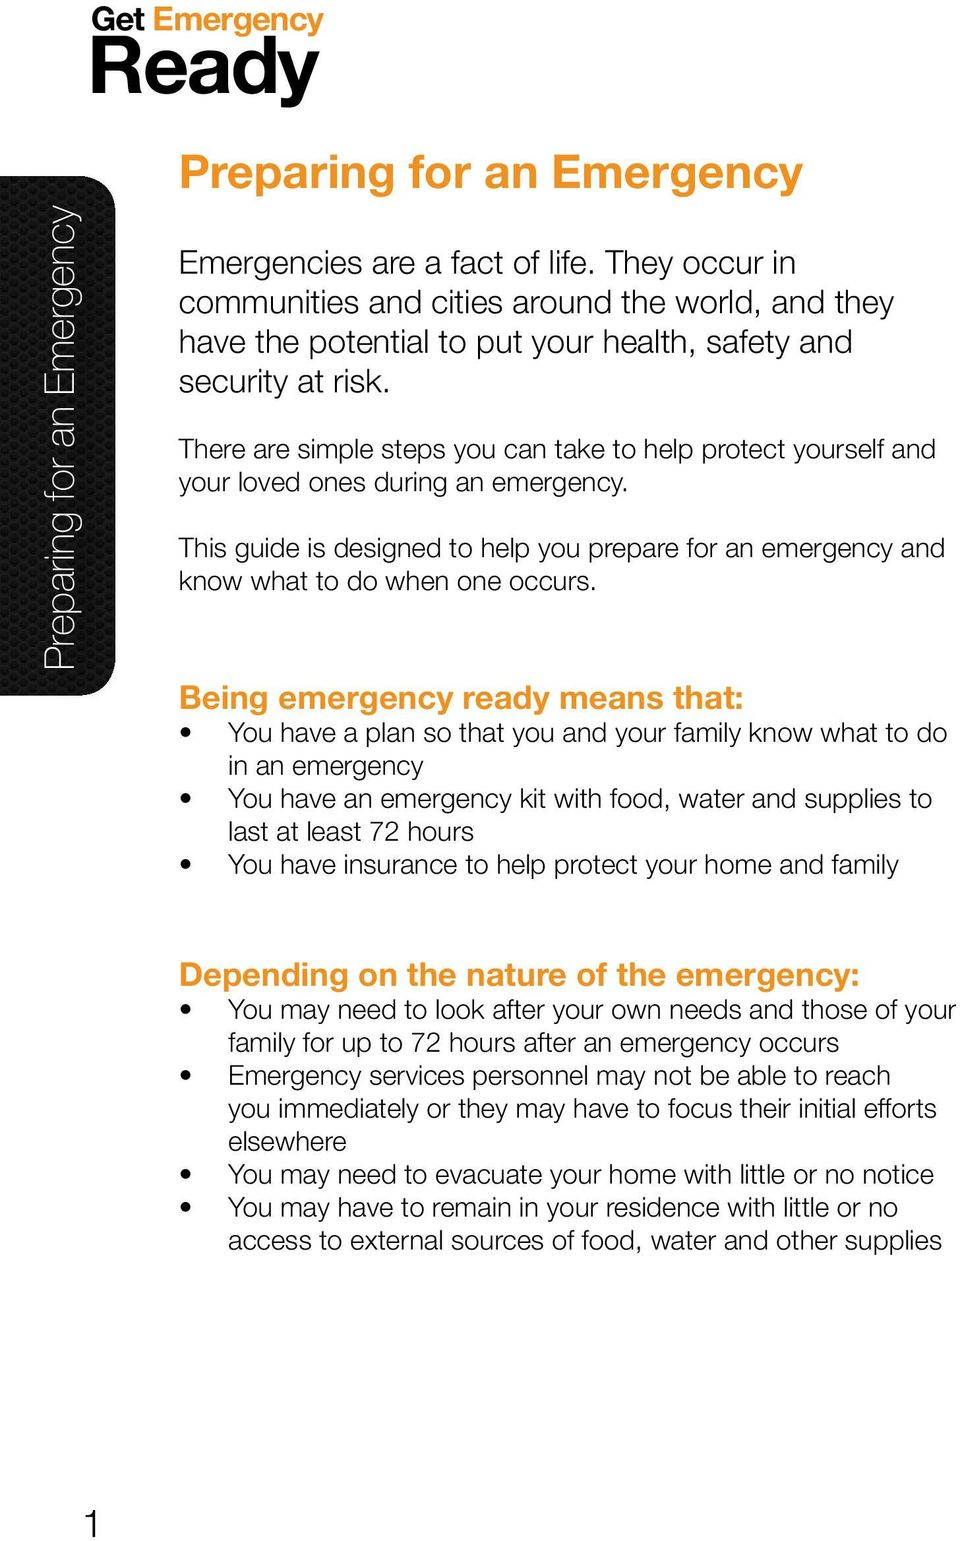 There are simple steps you can take to help protect yourself and your loved ones during an emergency. This guide is designed to help you prepare for an emergency and know what to do when one occurs.